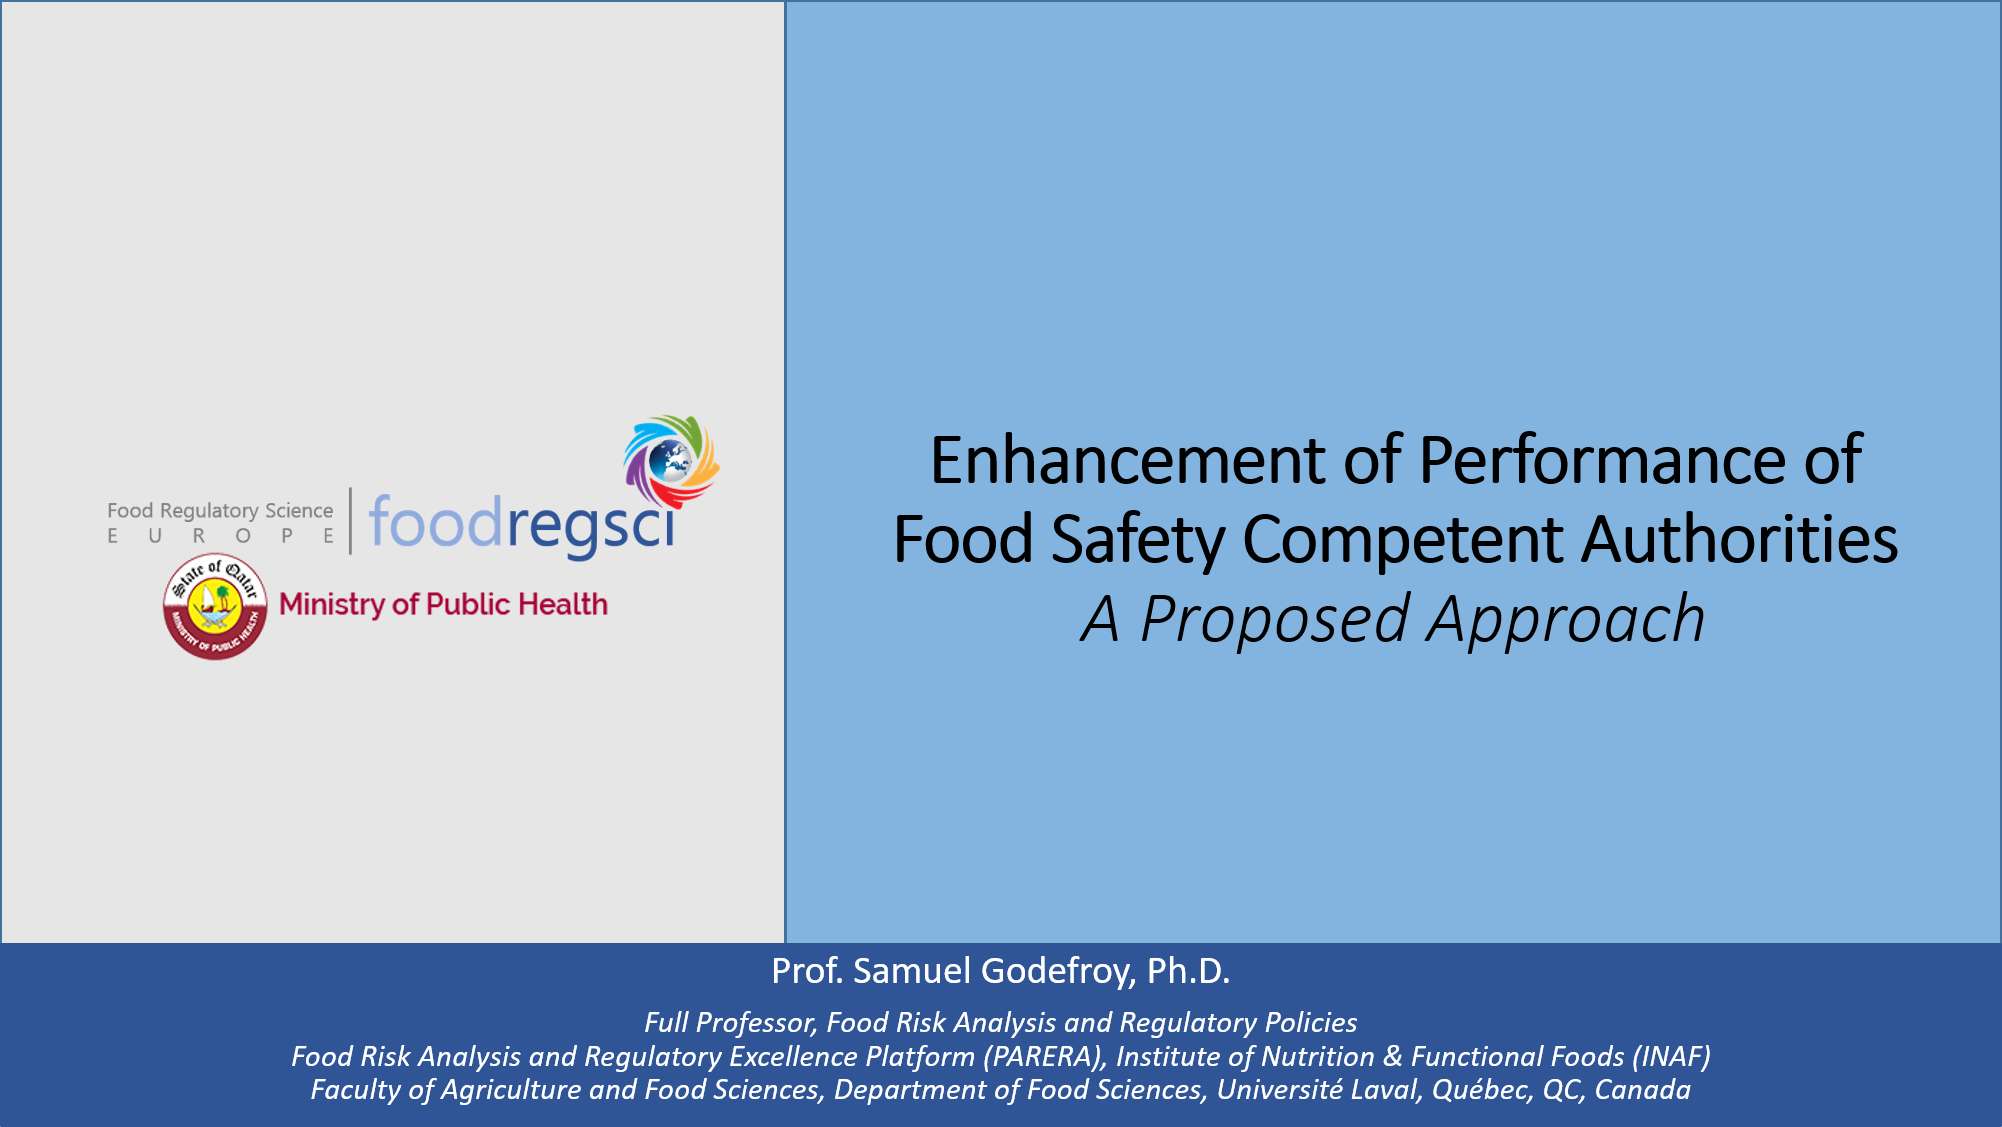 Qatar | Enhancement of Performance of Food Safety Competent Authorities: A Proposed Approach